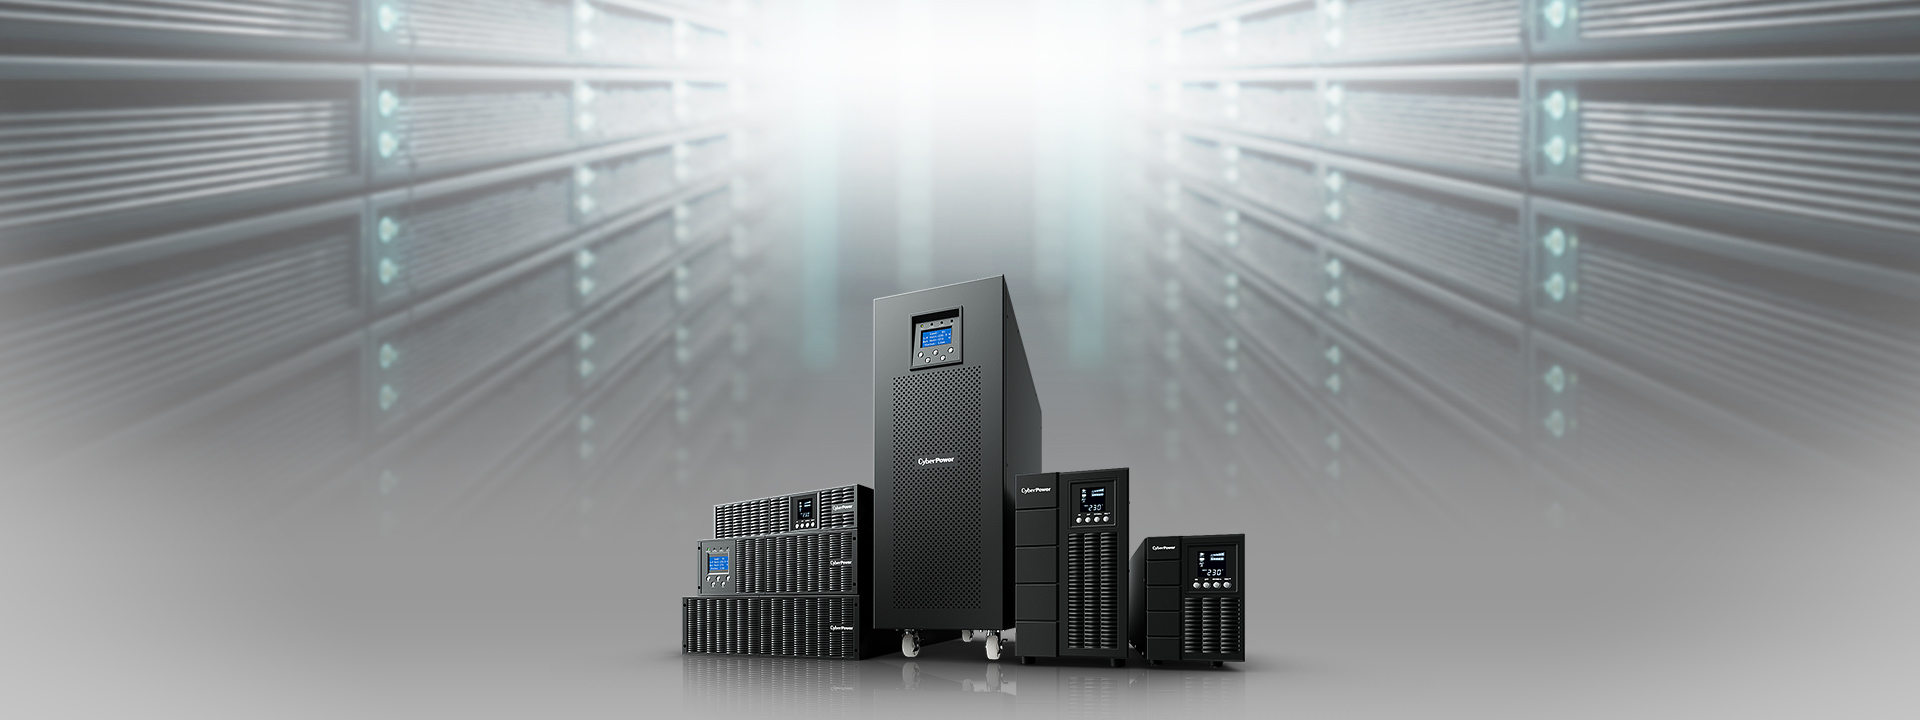 CyberPower's Online S UPS provides perfect power protection with seamless pure sine wave output